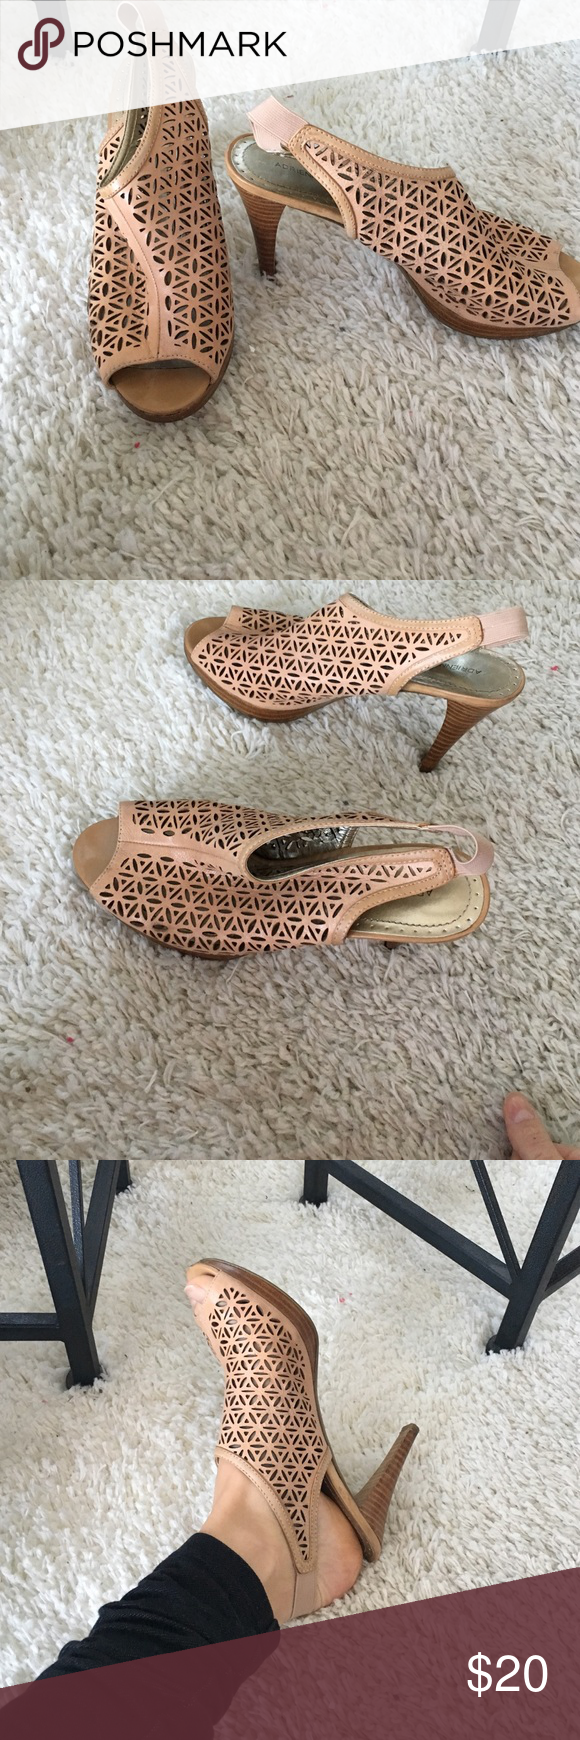 Adrienne Vittadini heels Great condition! Stretchable strap in back allows for more comfortable fit. Very comfortable! Adrienne Vittadini Shoes Heels